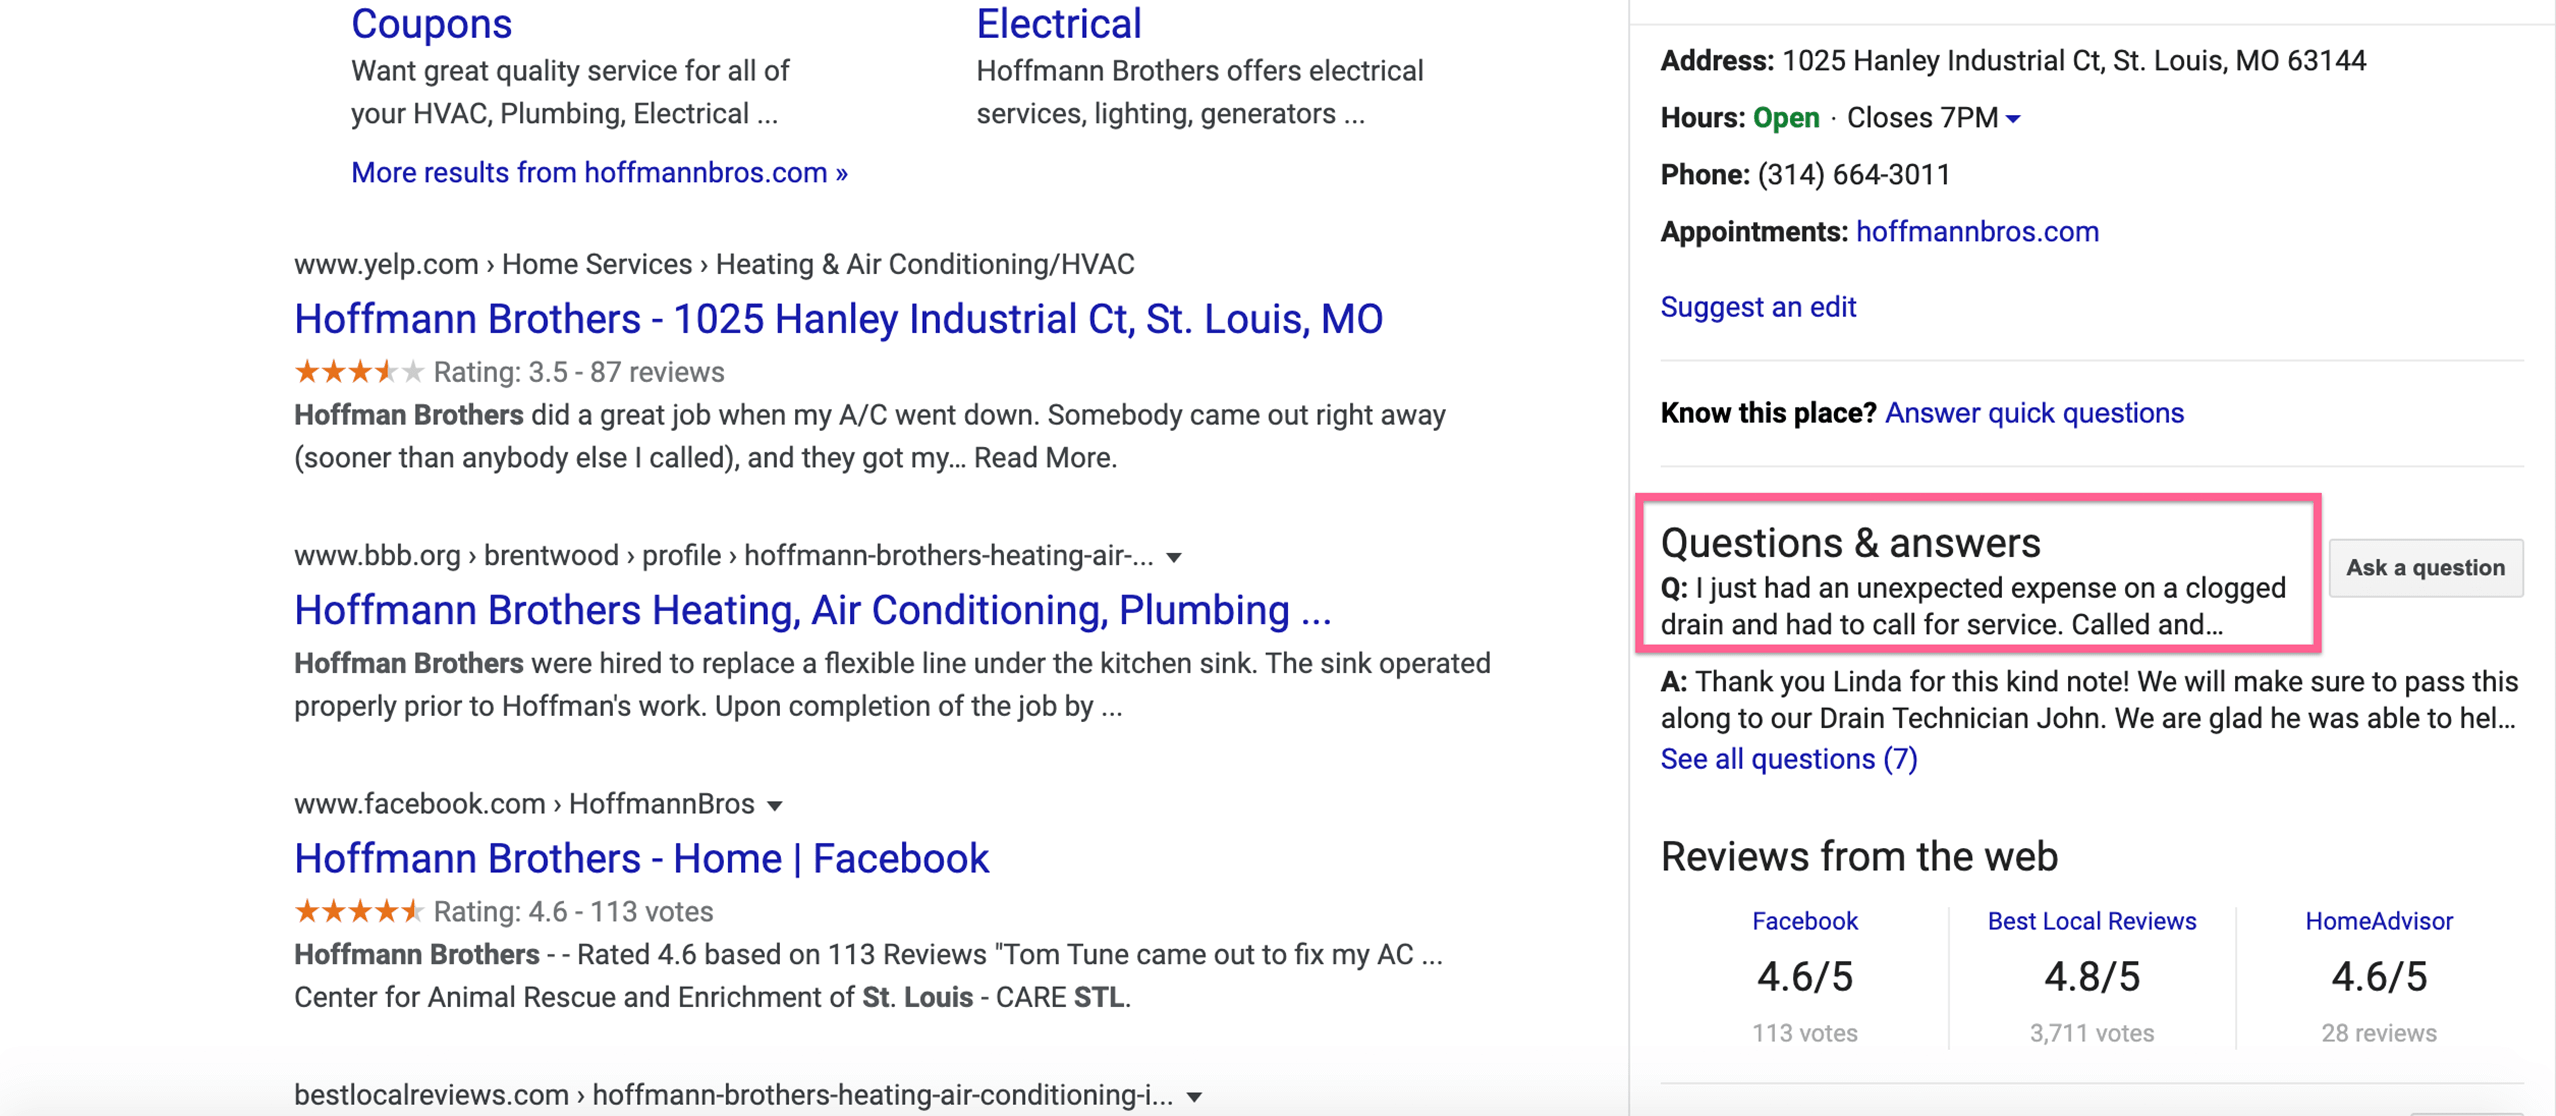 google my business questions and answers example